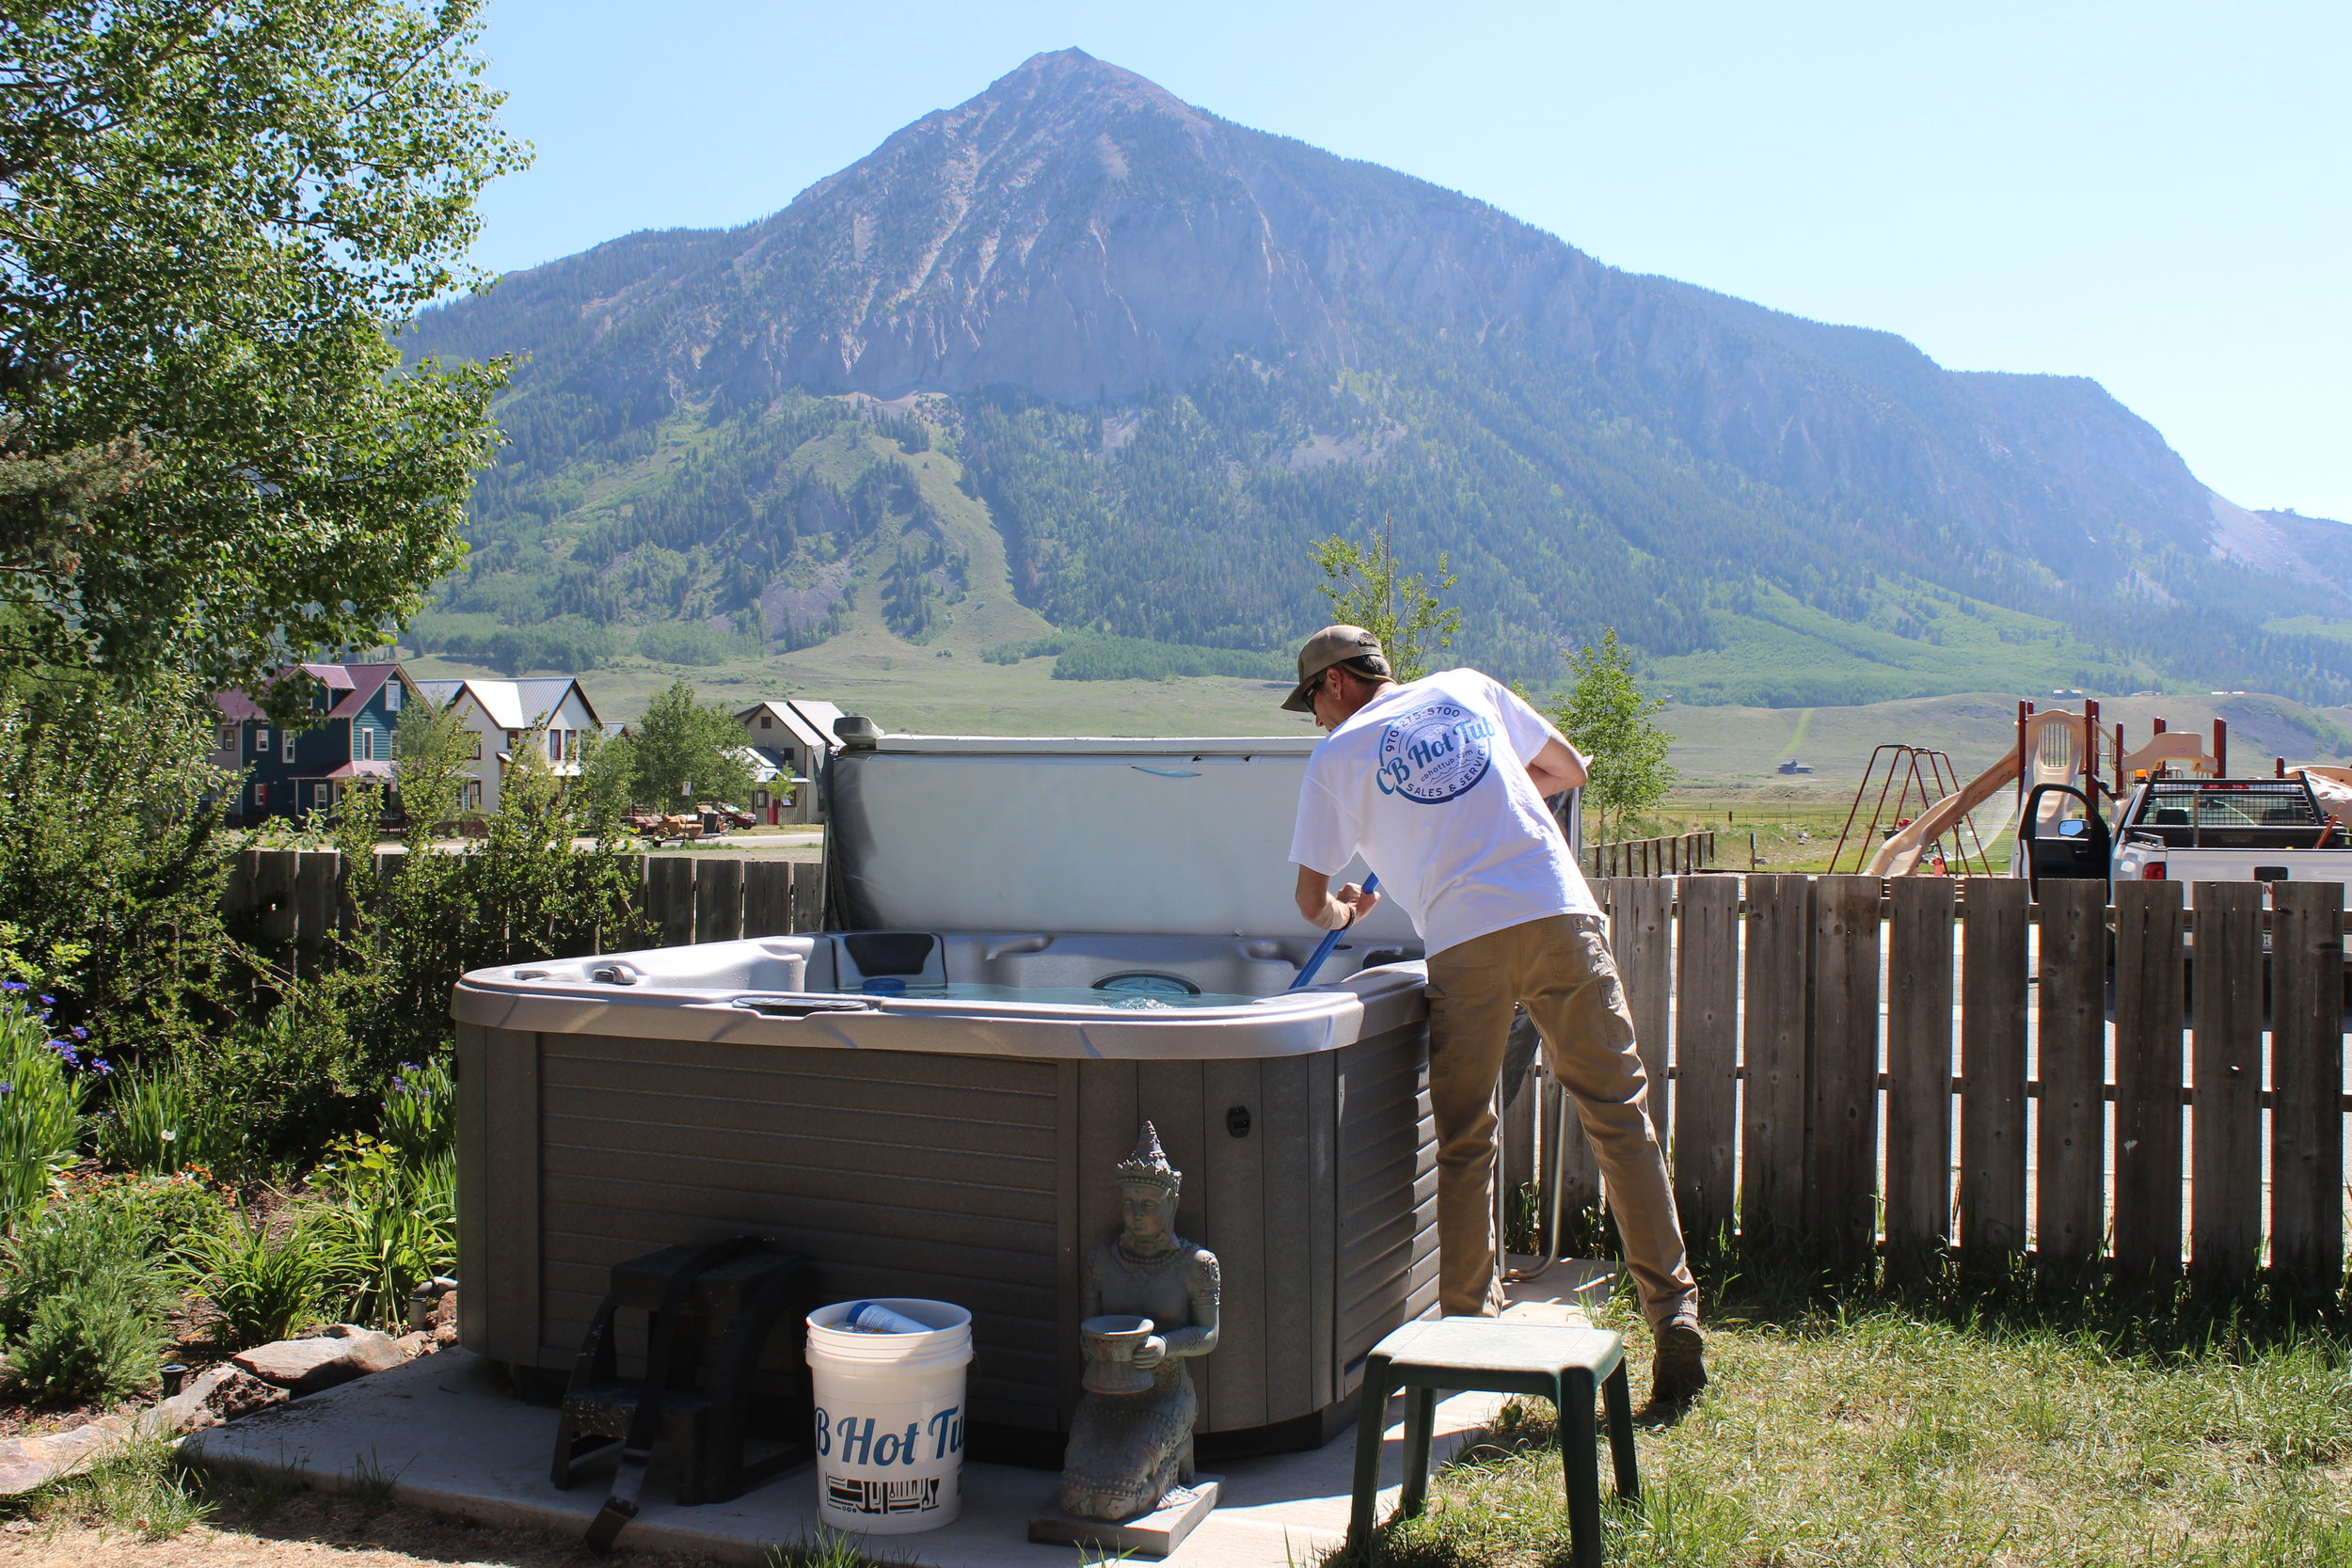 hot-tub-cleaning-service-crested-butte-gunnison.jpg